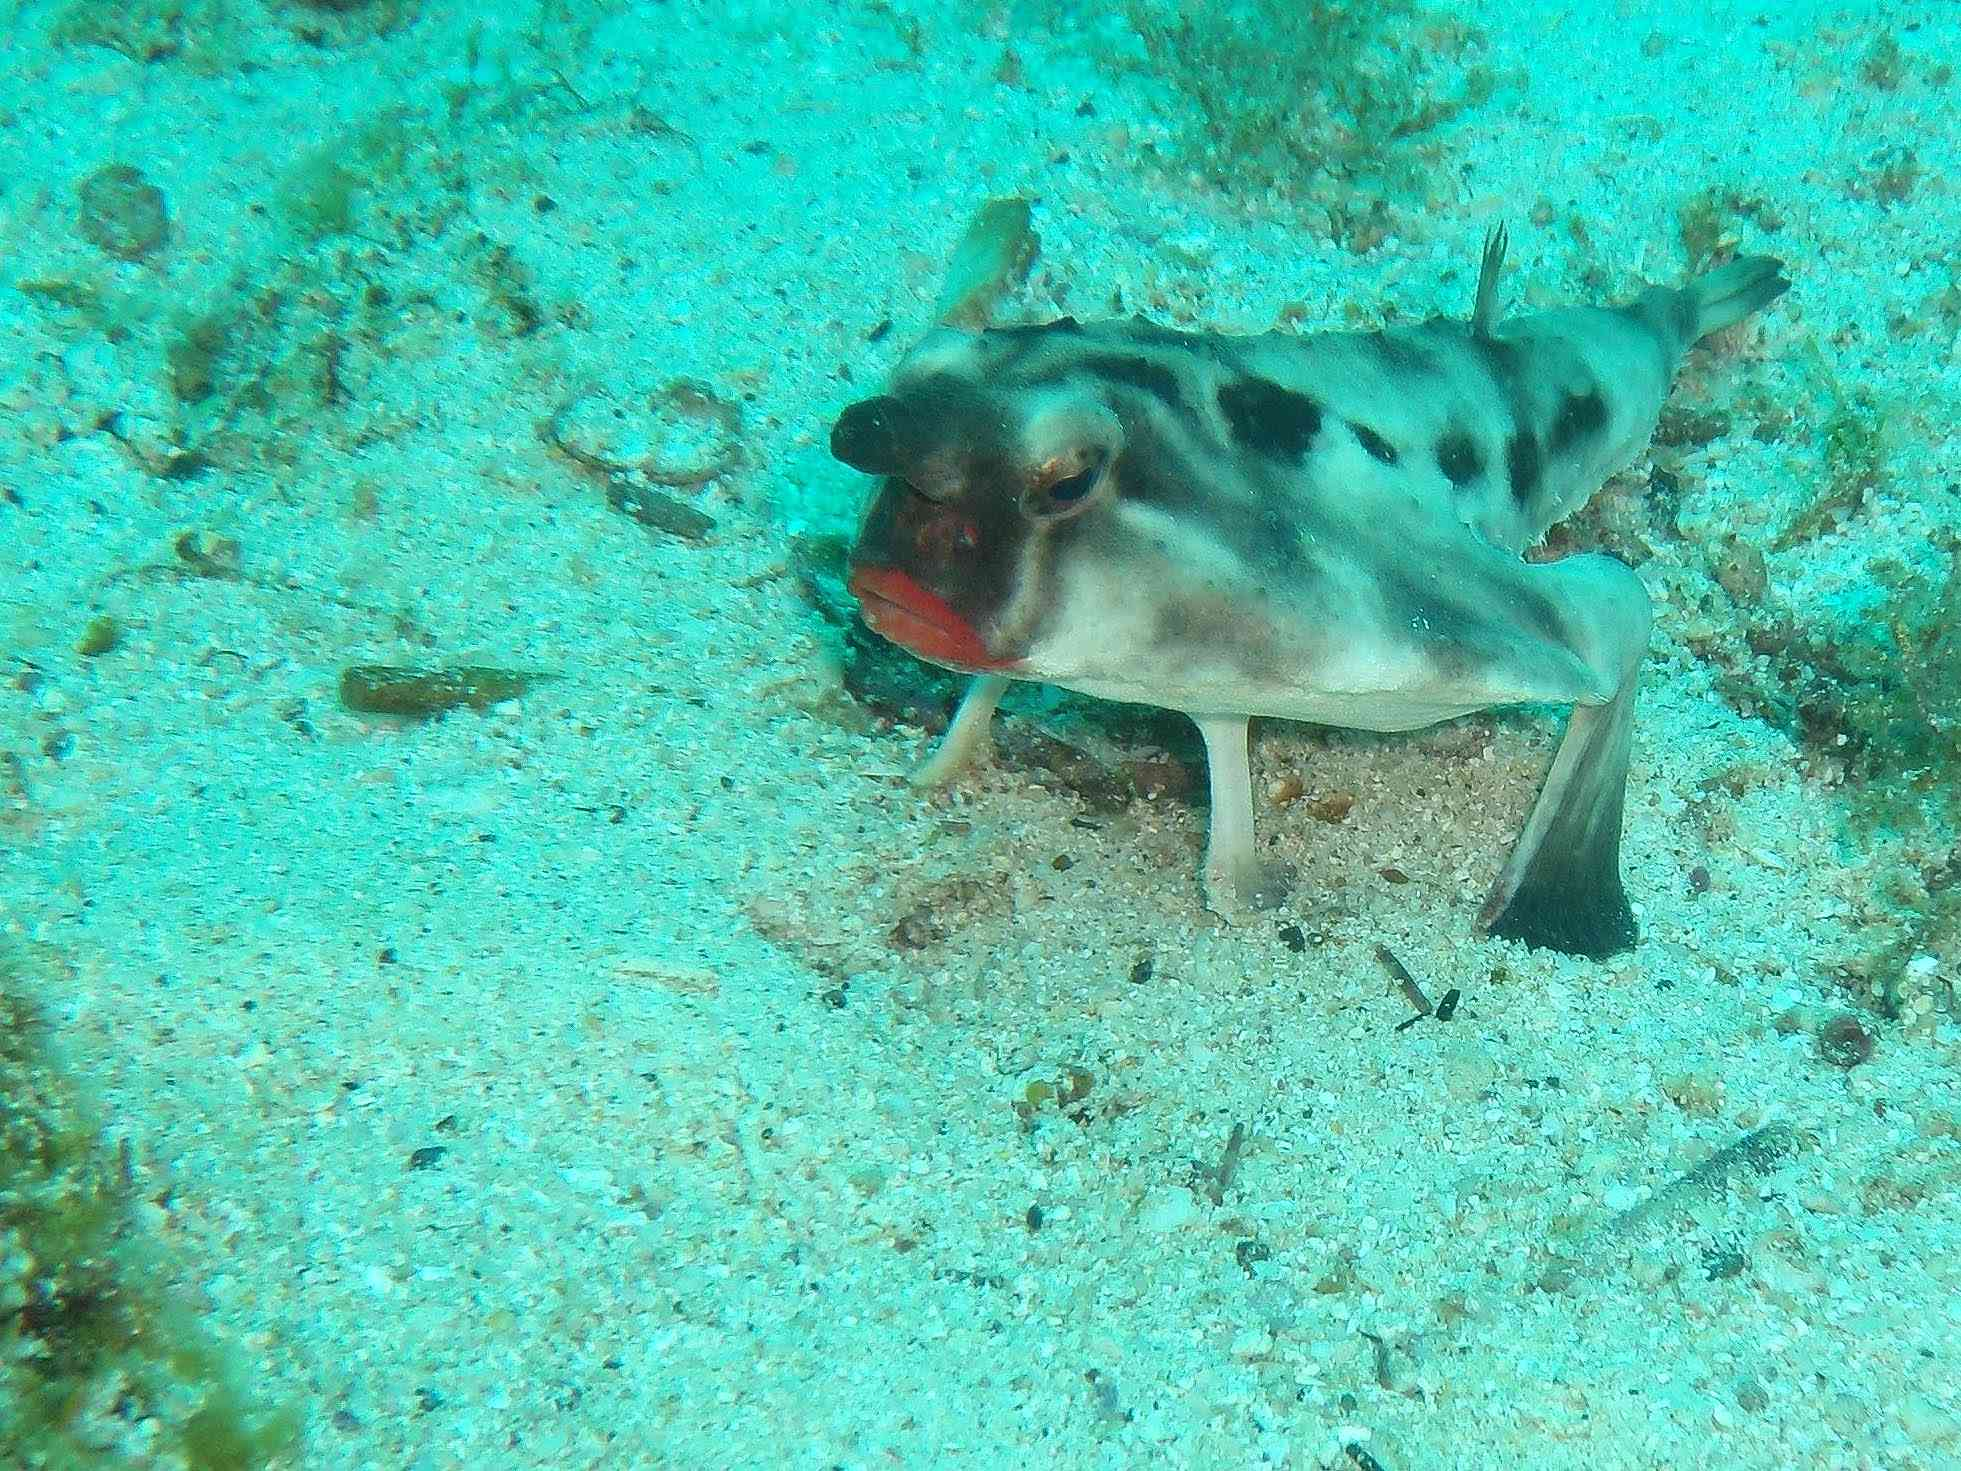 Red-lipped Bat fish in the water of the Galapagos